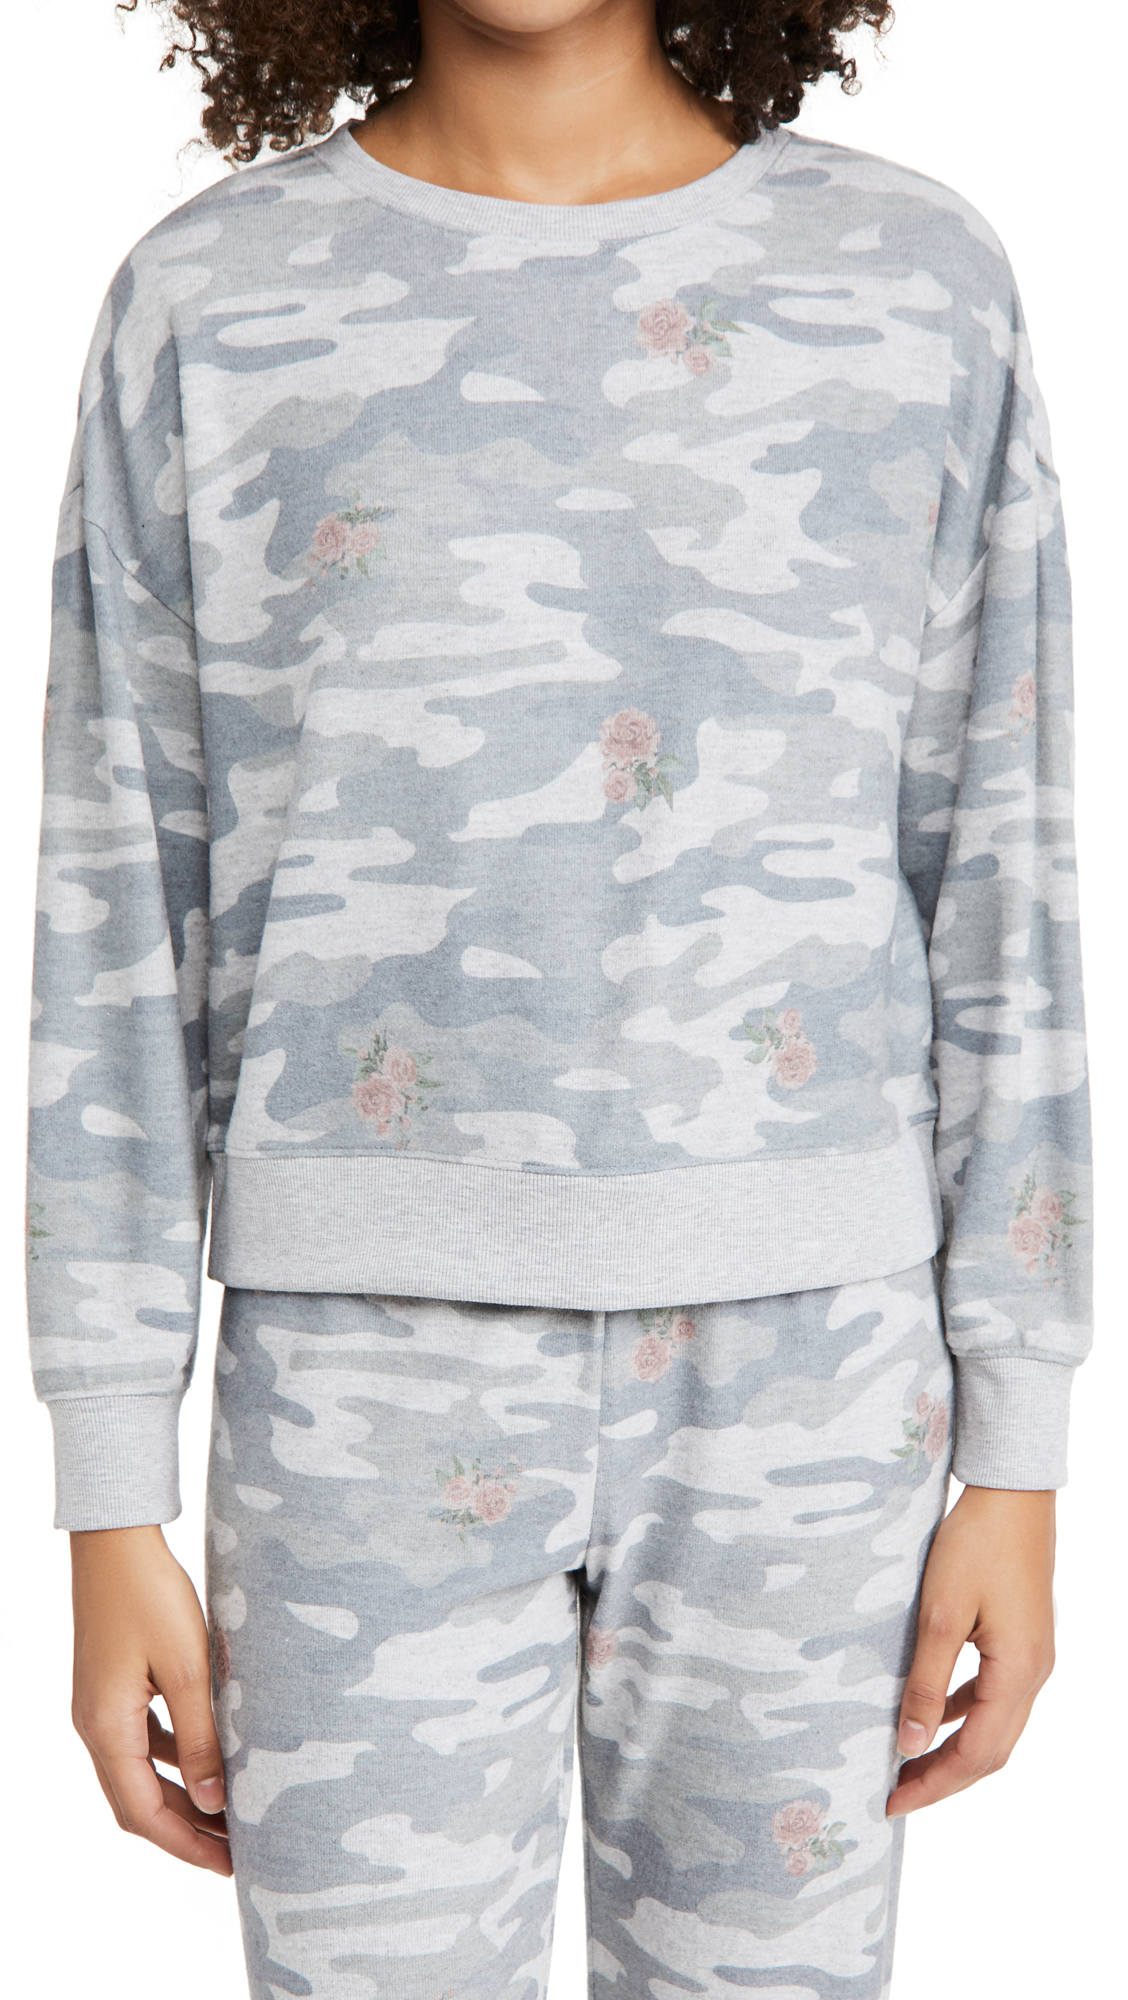 Z Supply Elle Rose Camo Pullover